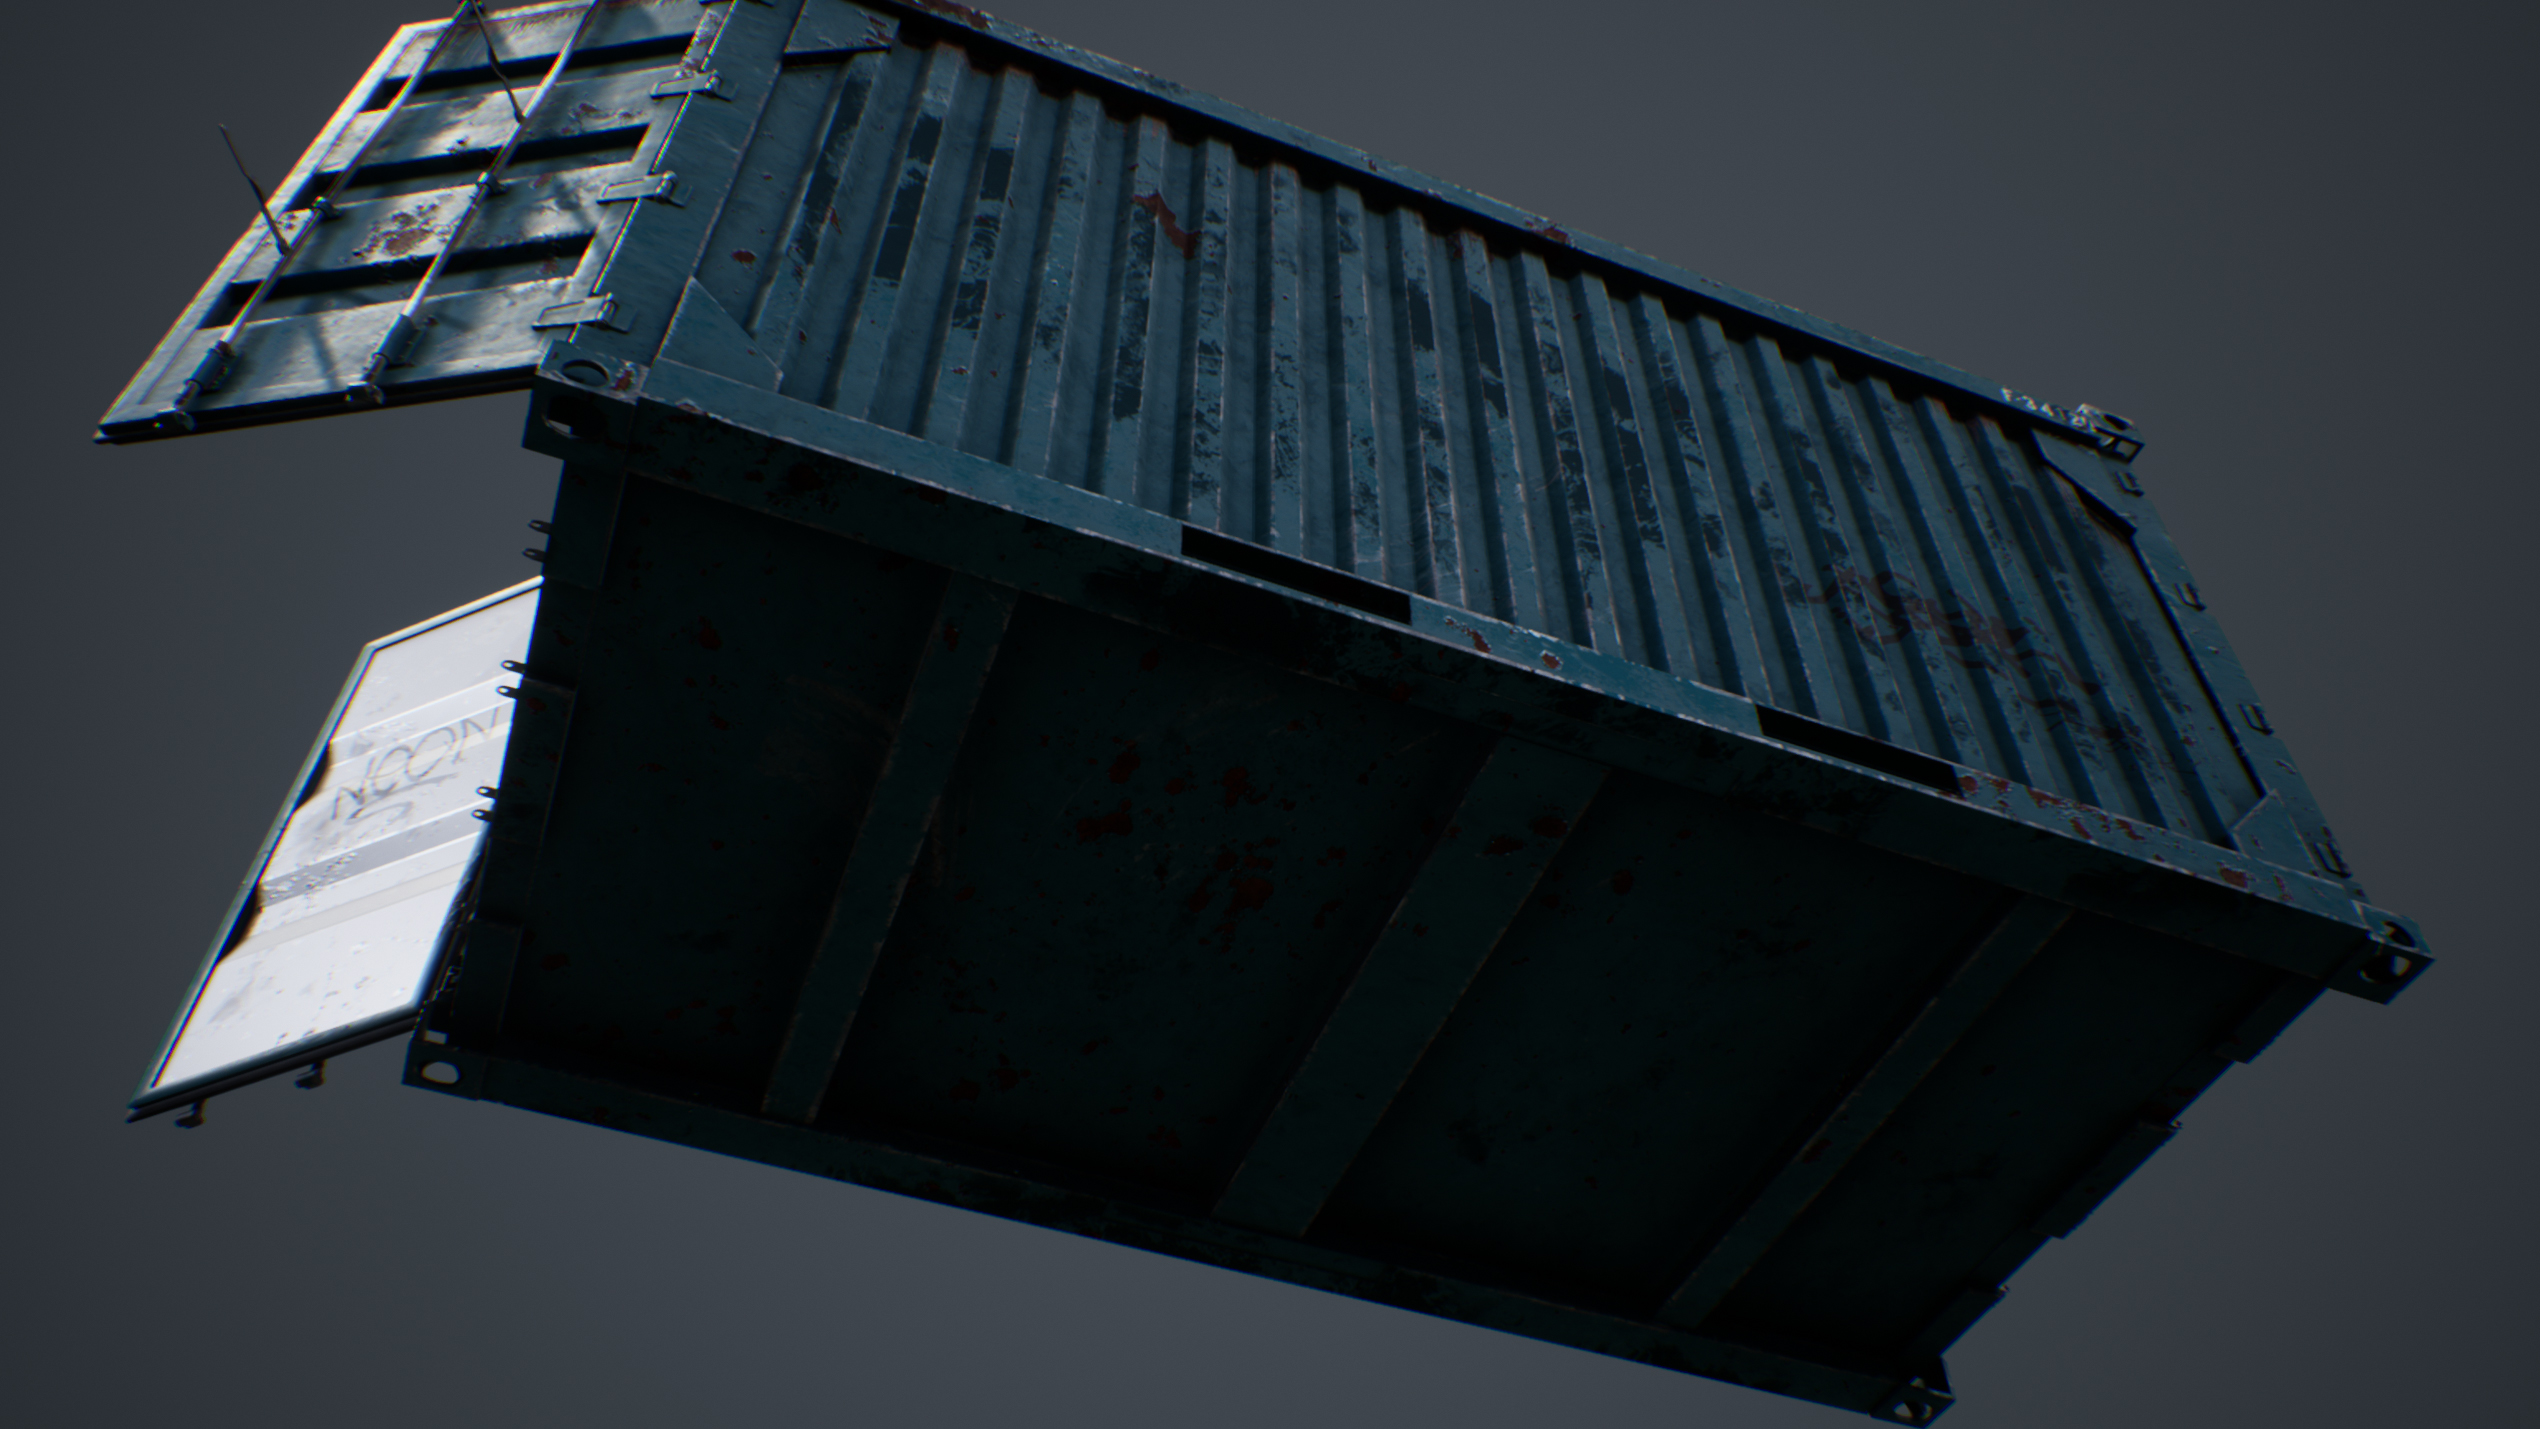 UE4 screenshot bottom up shot of the container